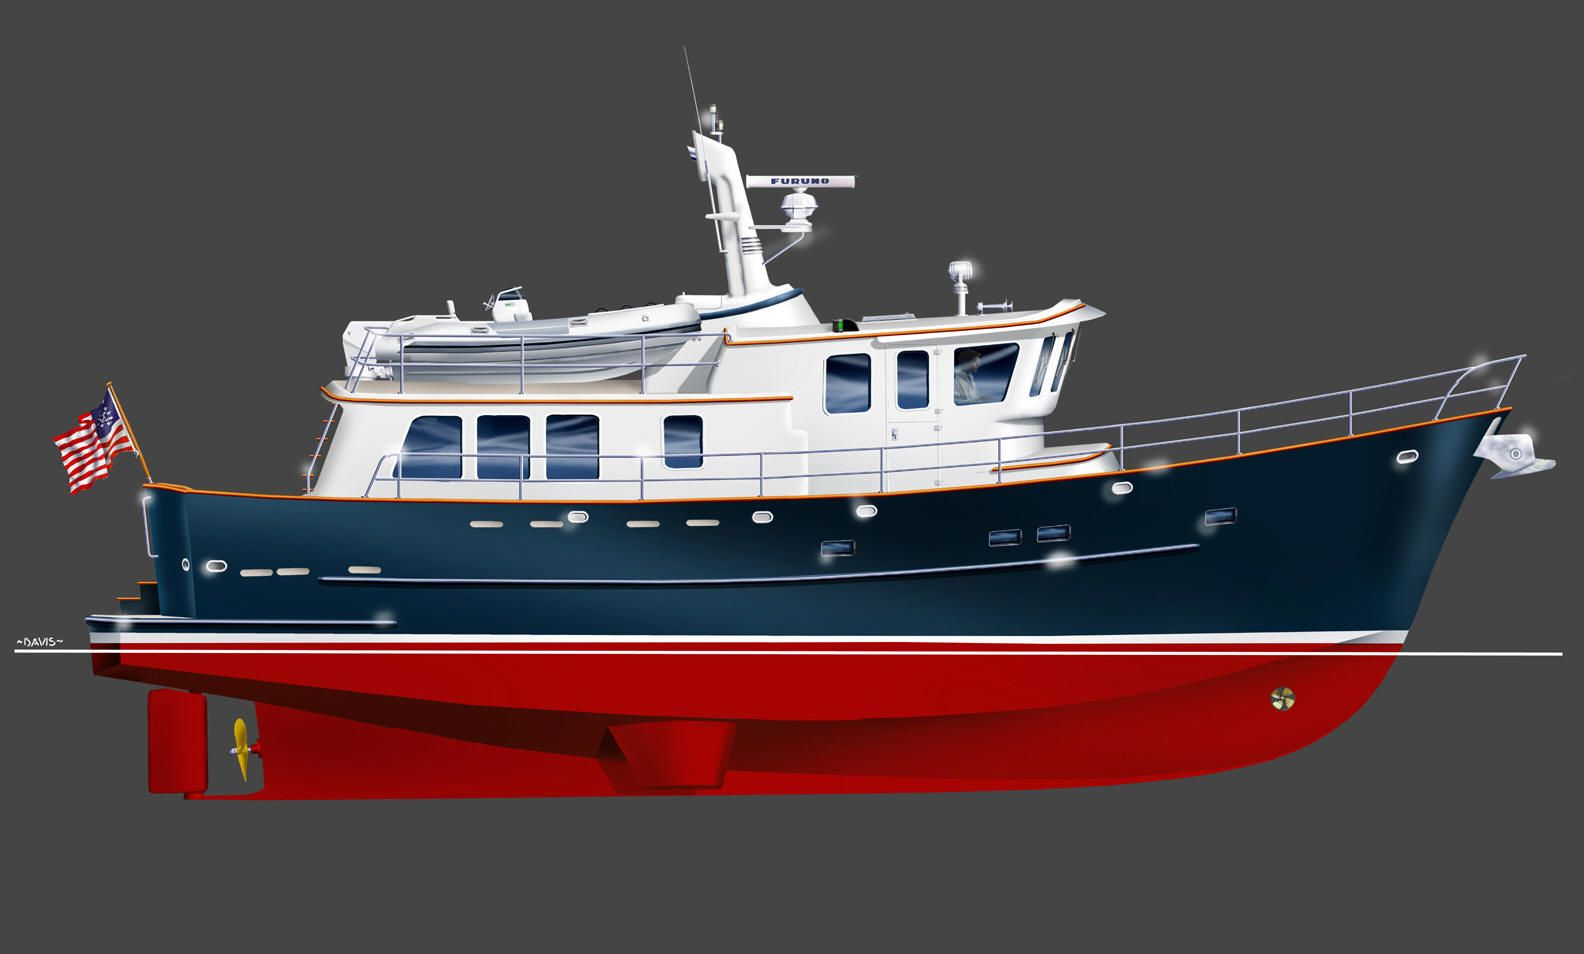 Neville Trawler - Products | Boat.model.design | Pinterest | Modern classic, Boating and Diesel duck